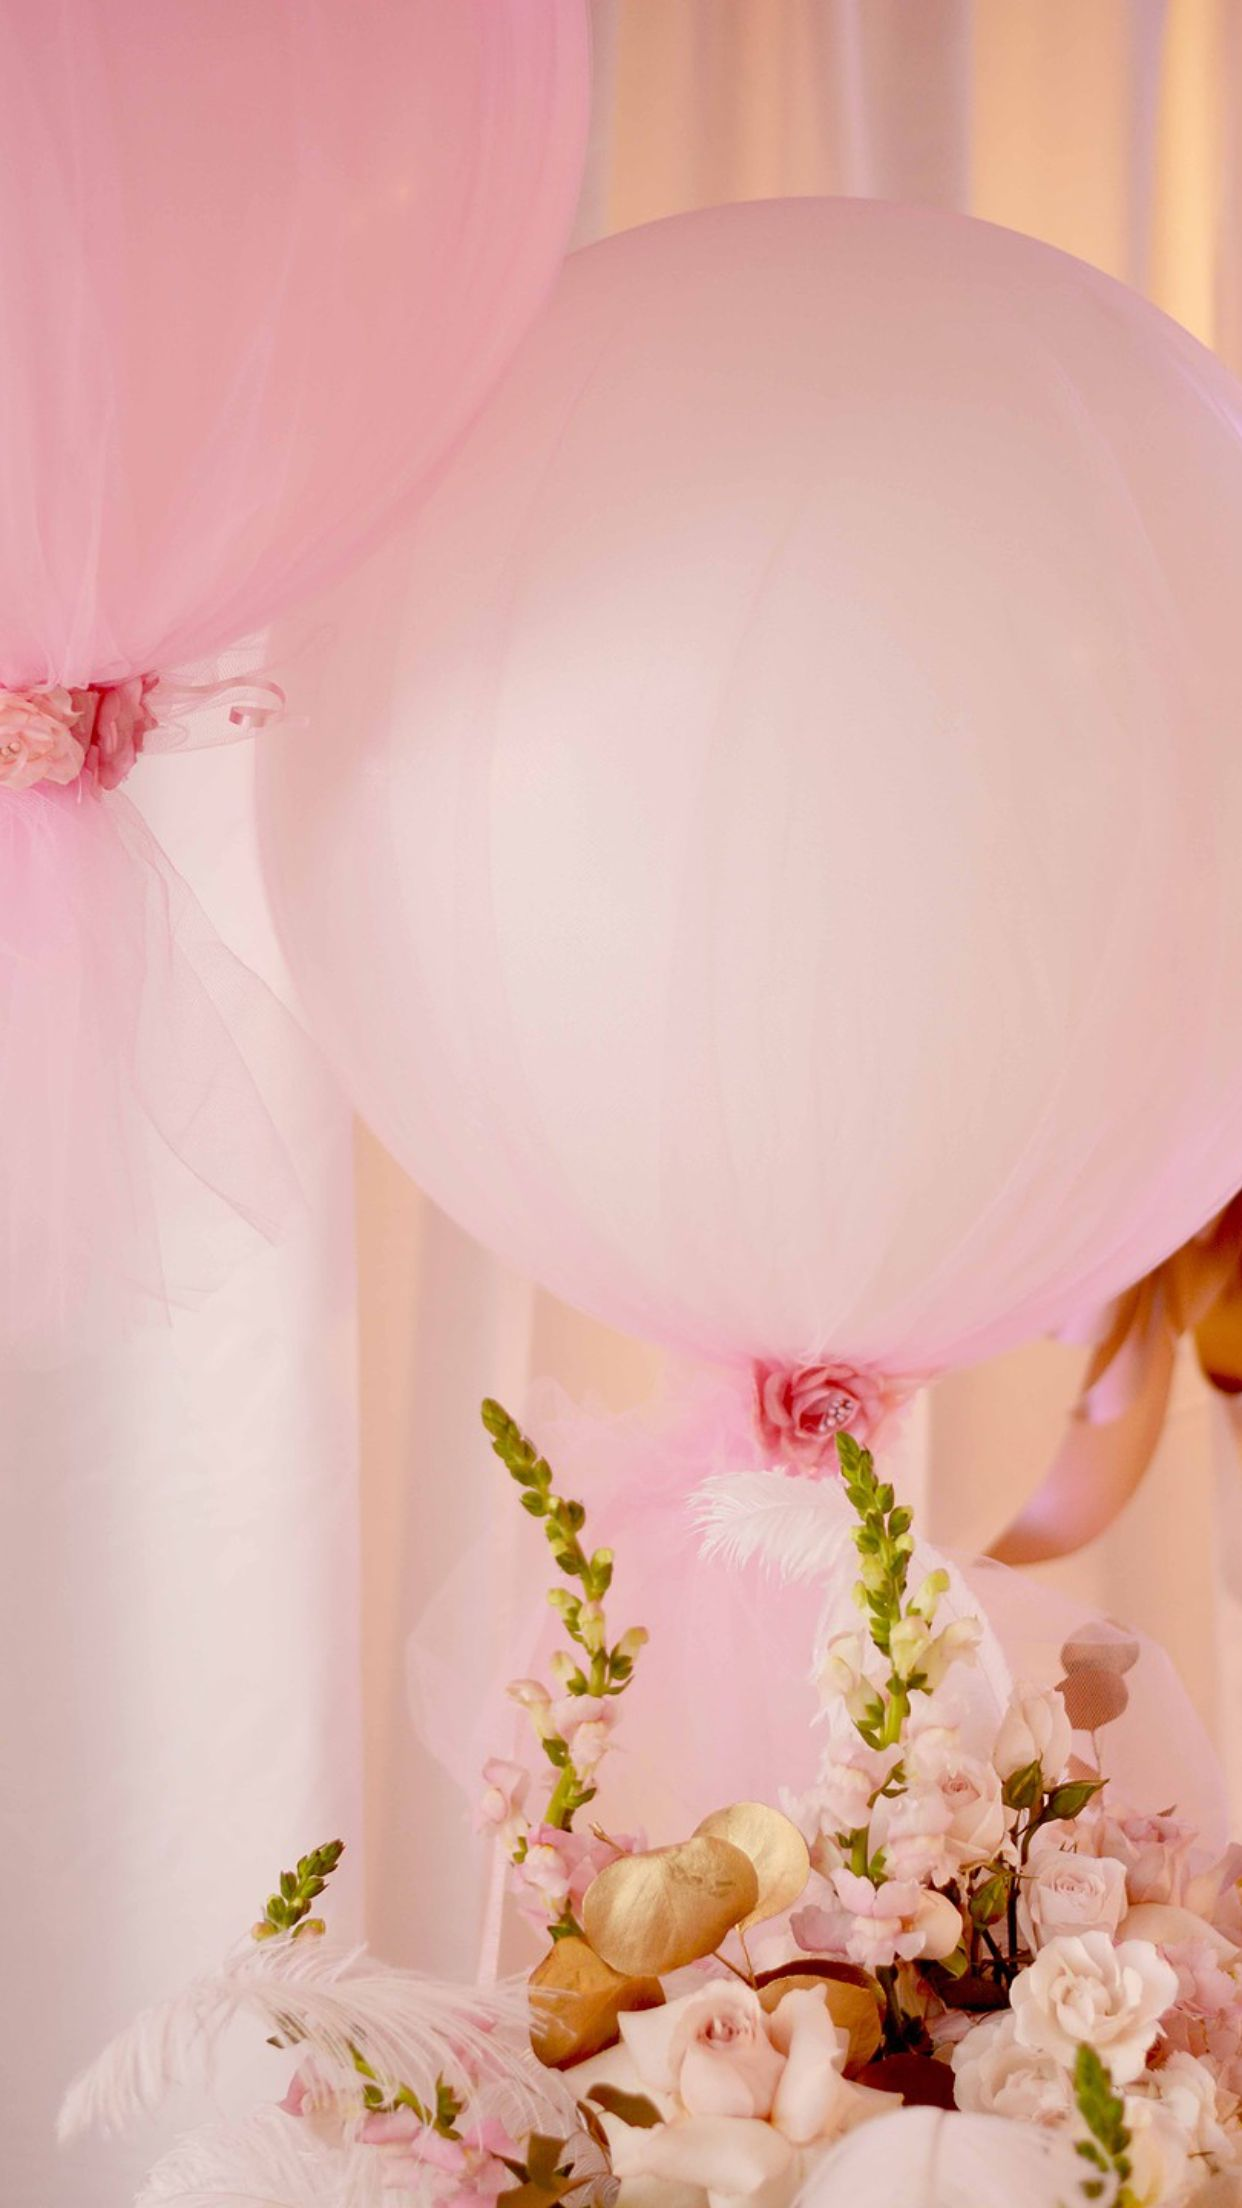 Chic balloon birthday/ wedding decoration ideas | Victoria\'s first ...